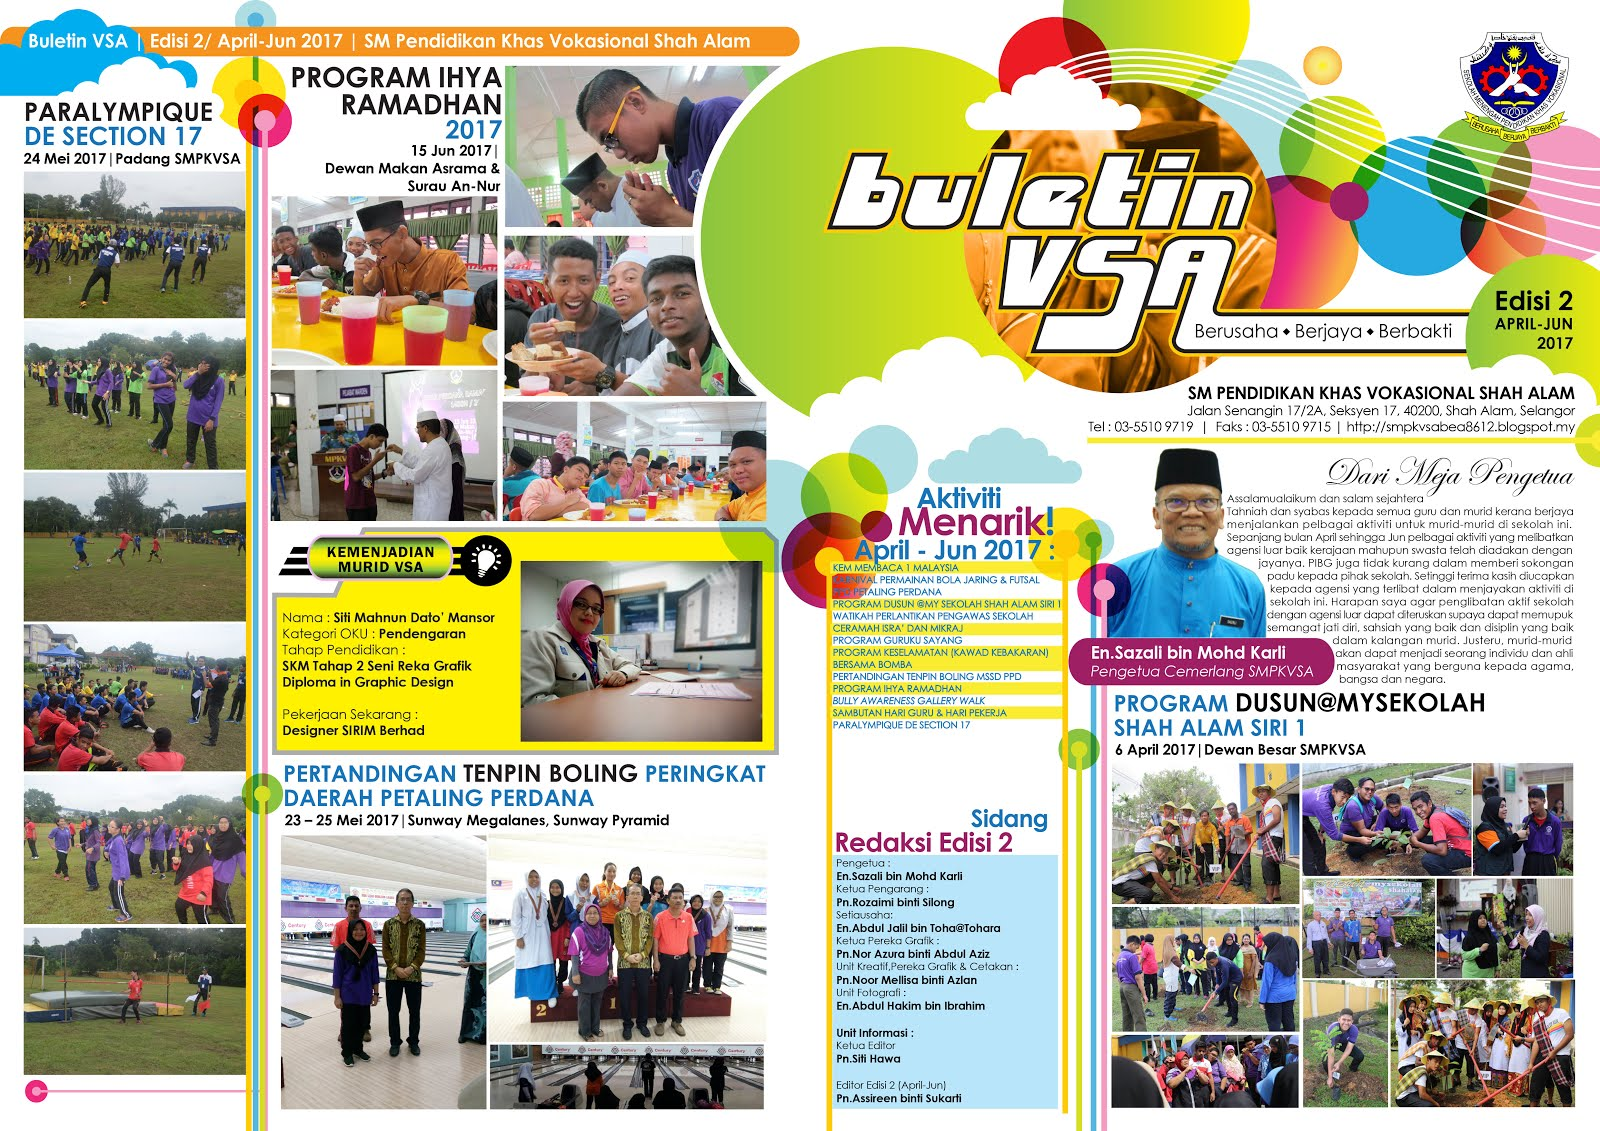 Buletin Edisi 2 2017 (April-Jun 2017)